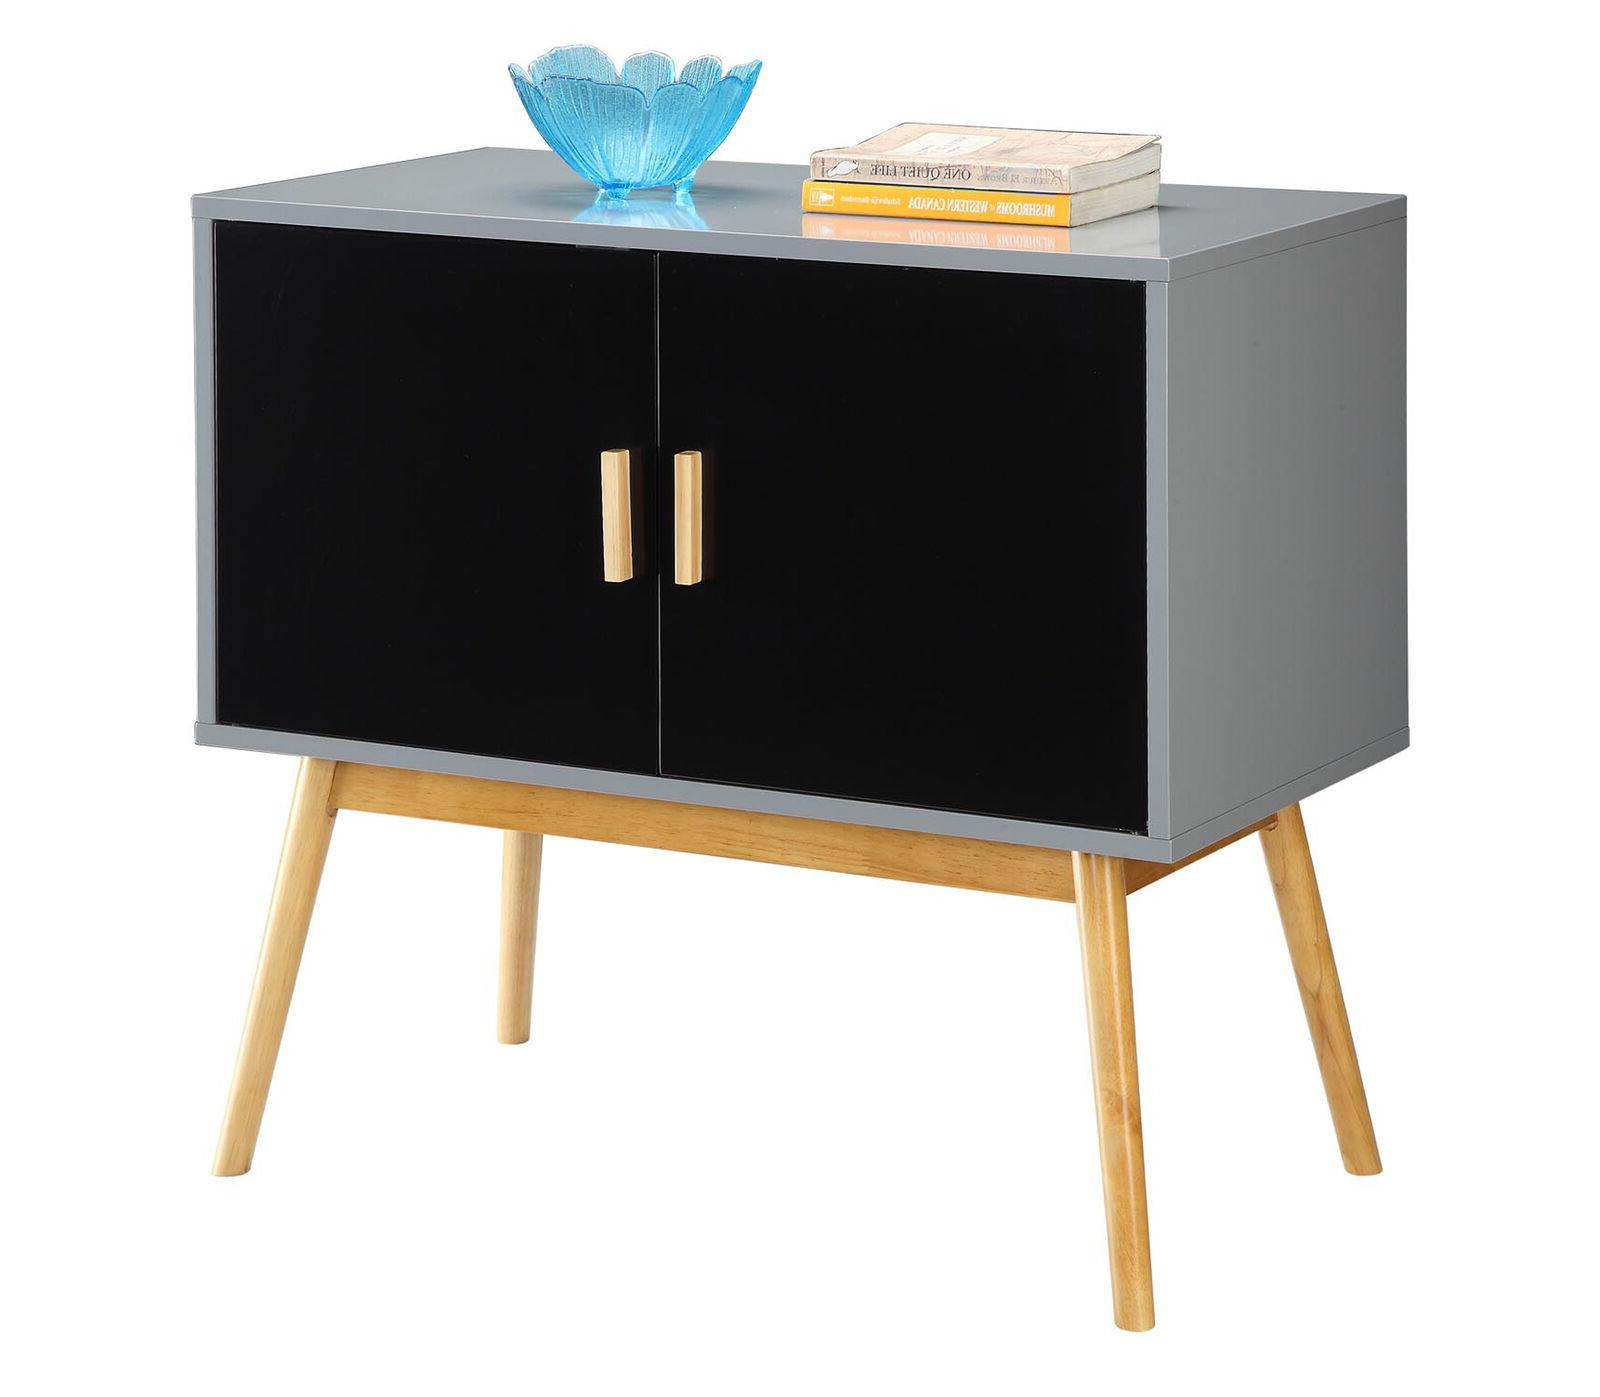 Large Storage Middle Modern Table NEW